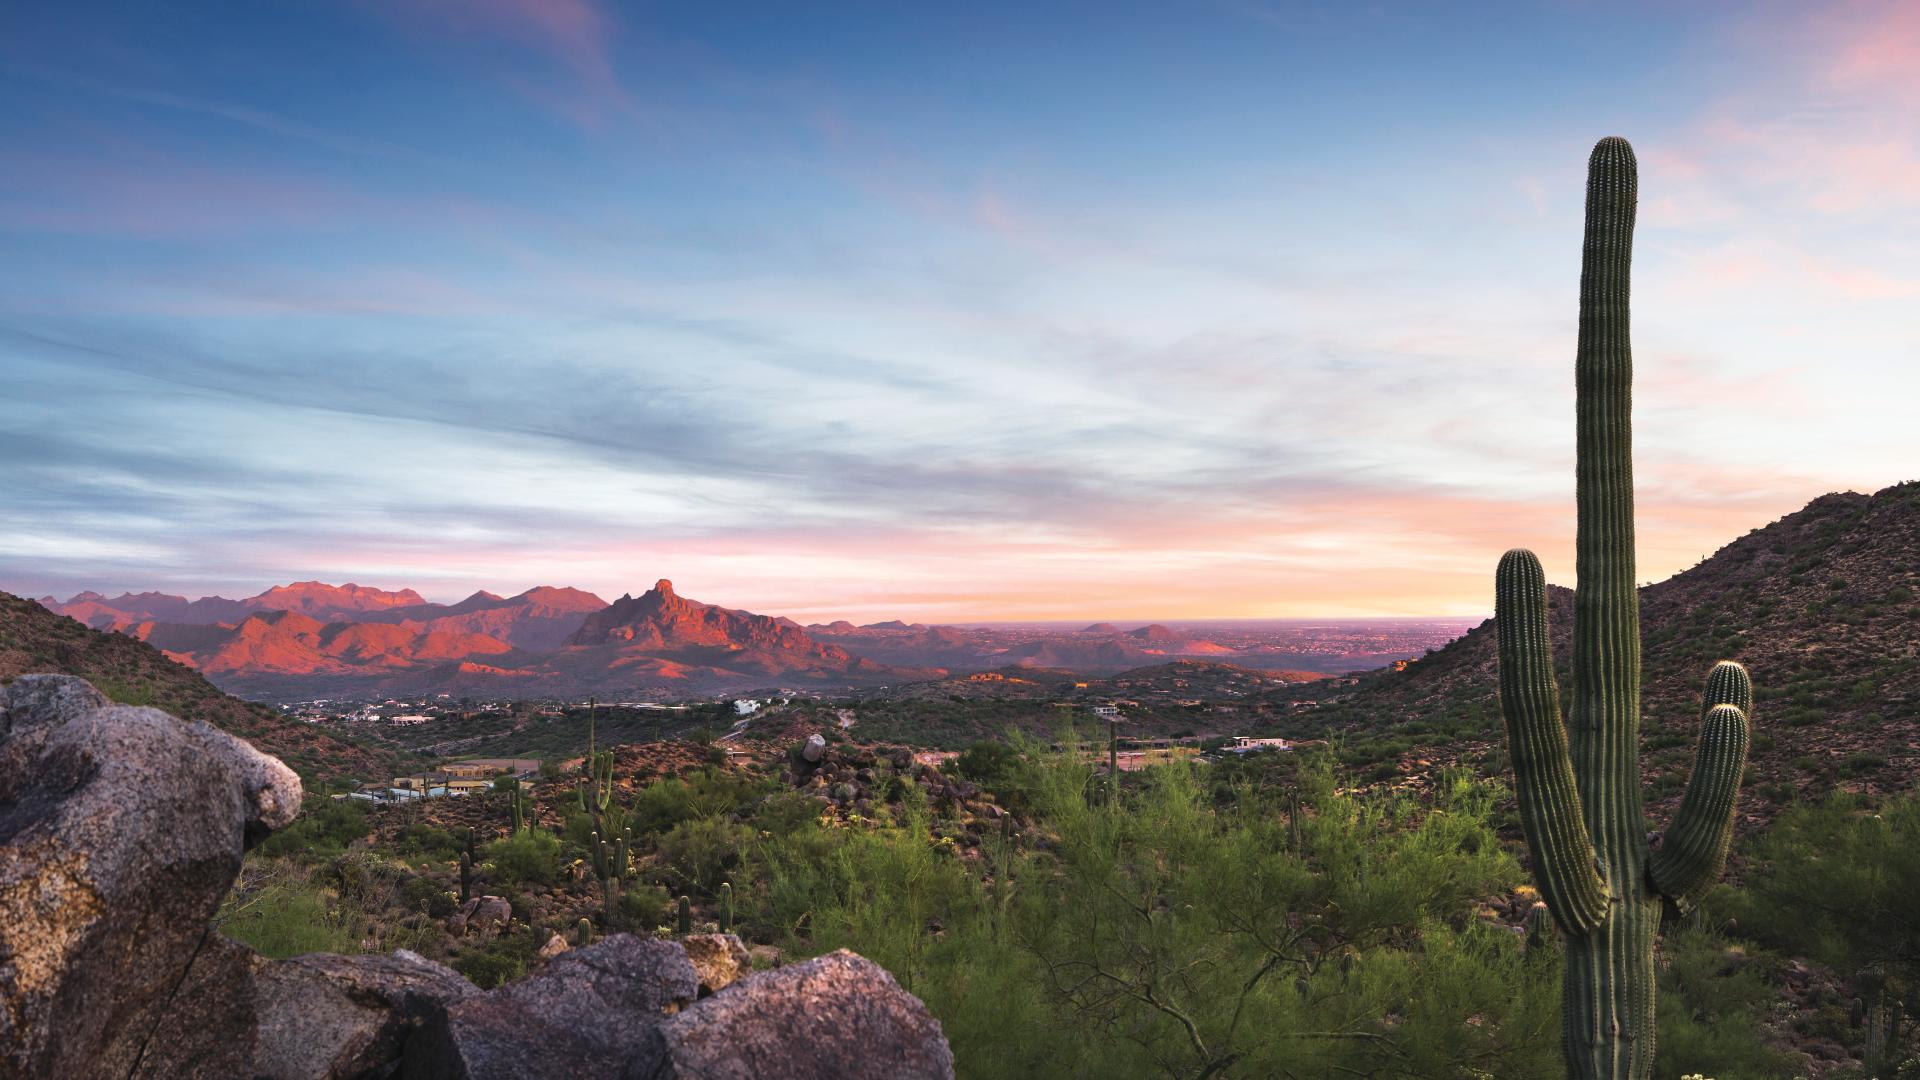 Serene Sonoran Desert setting with beautiful mountain and city light views